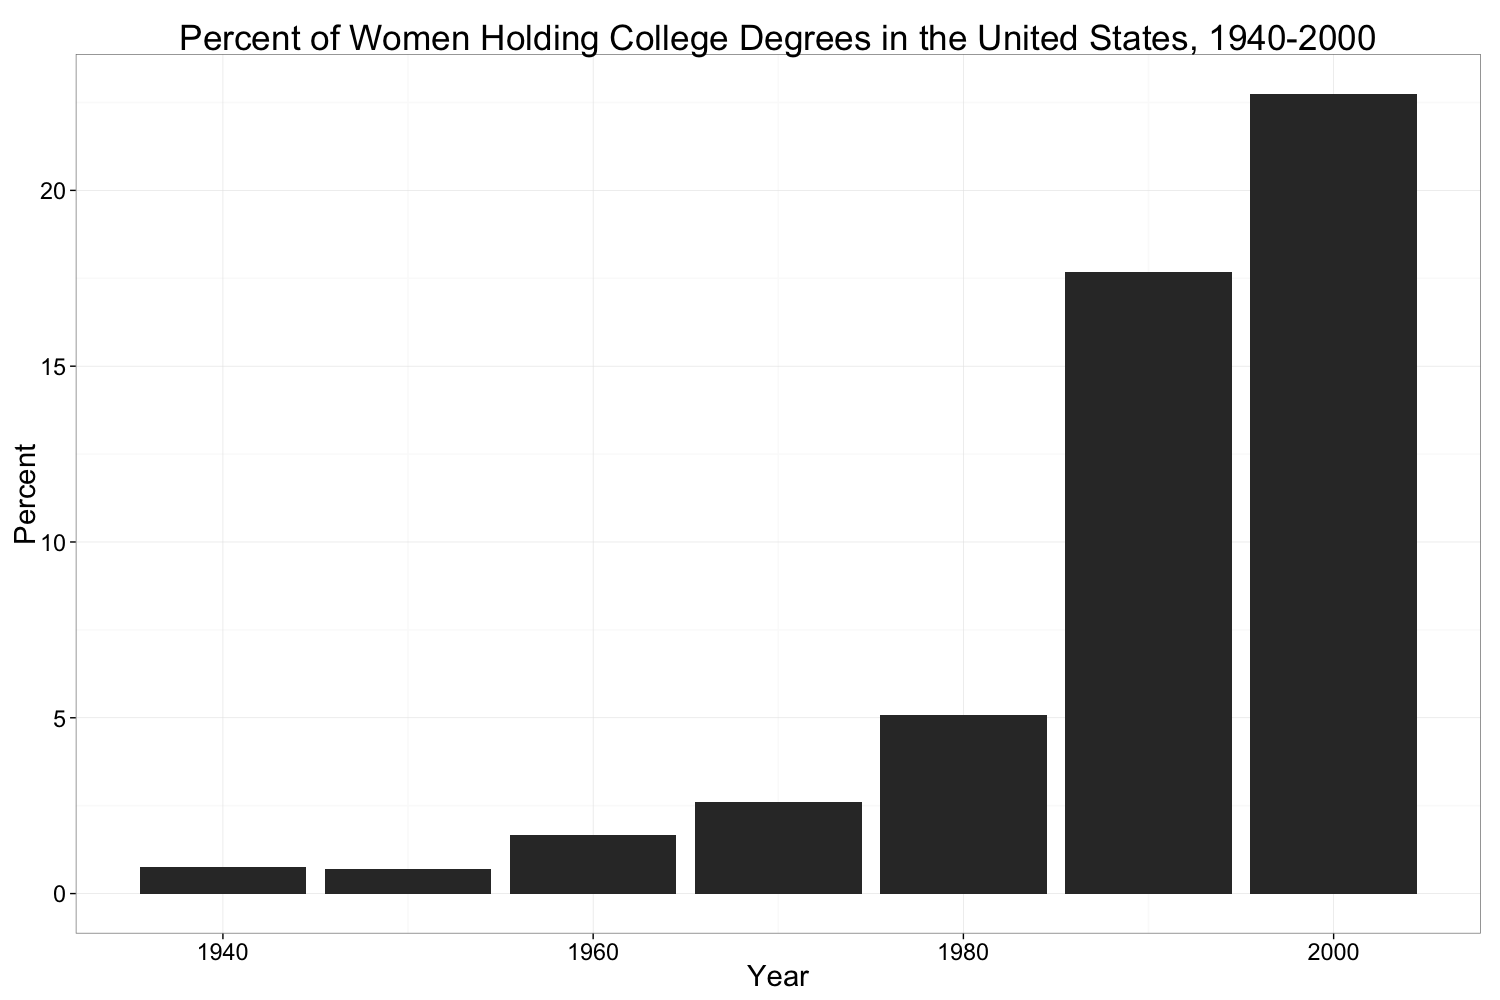 Figure 11 - Percent of Women Holding College Degrees in the United States, 1940-2000